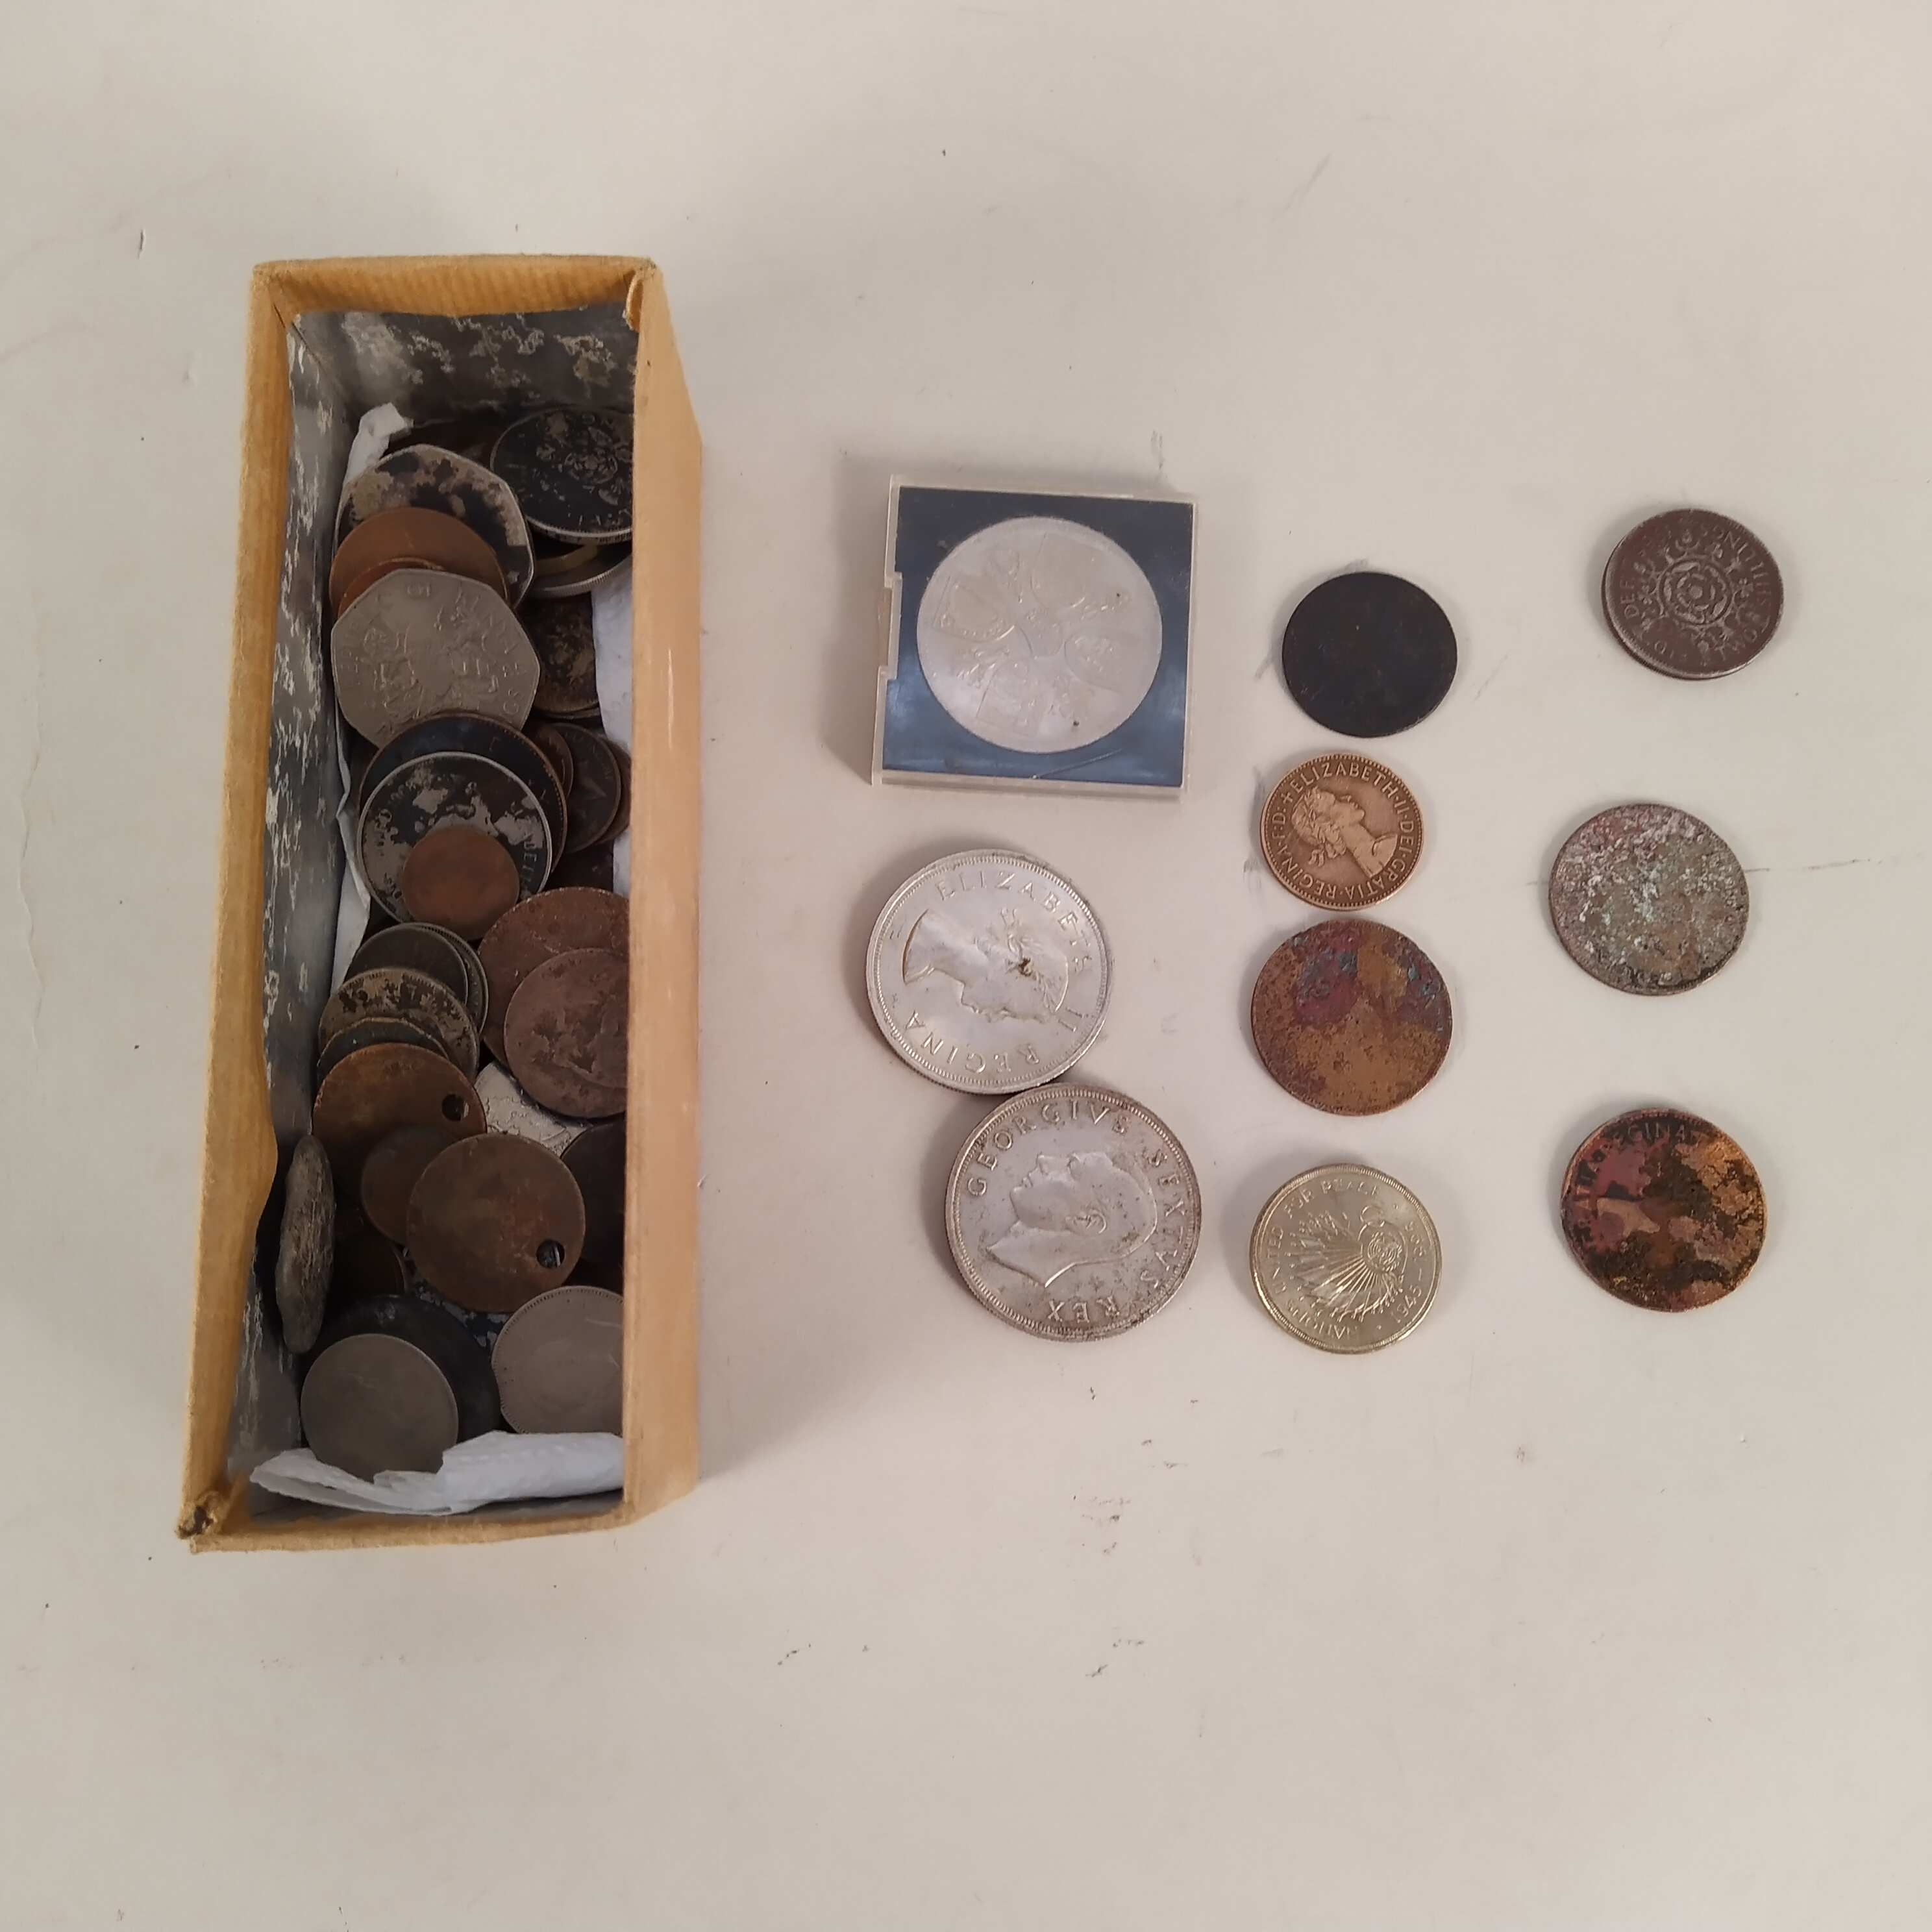 A small collection of vintage coins, - Image 3 of 3